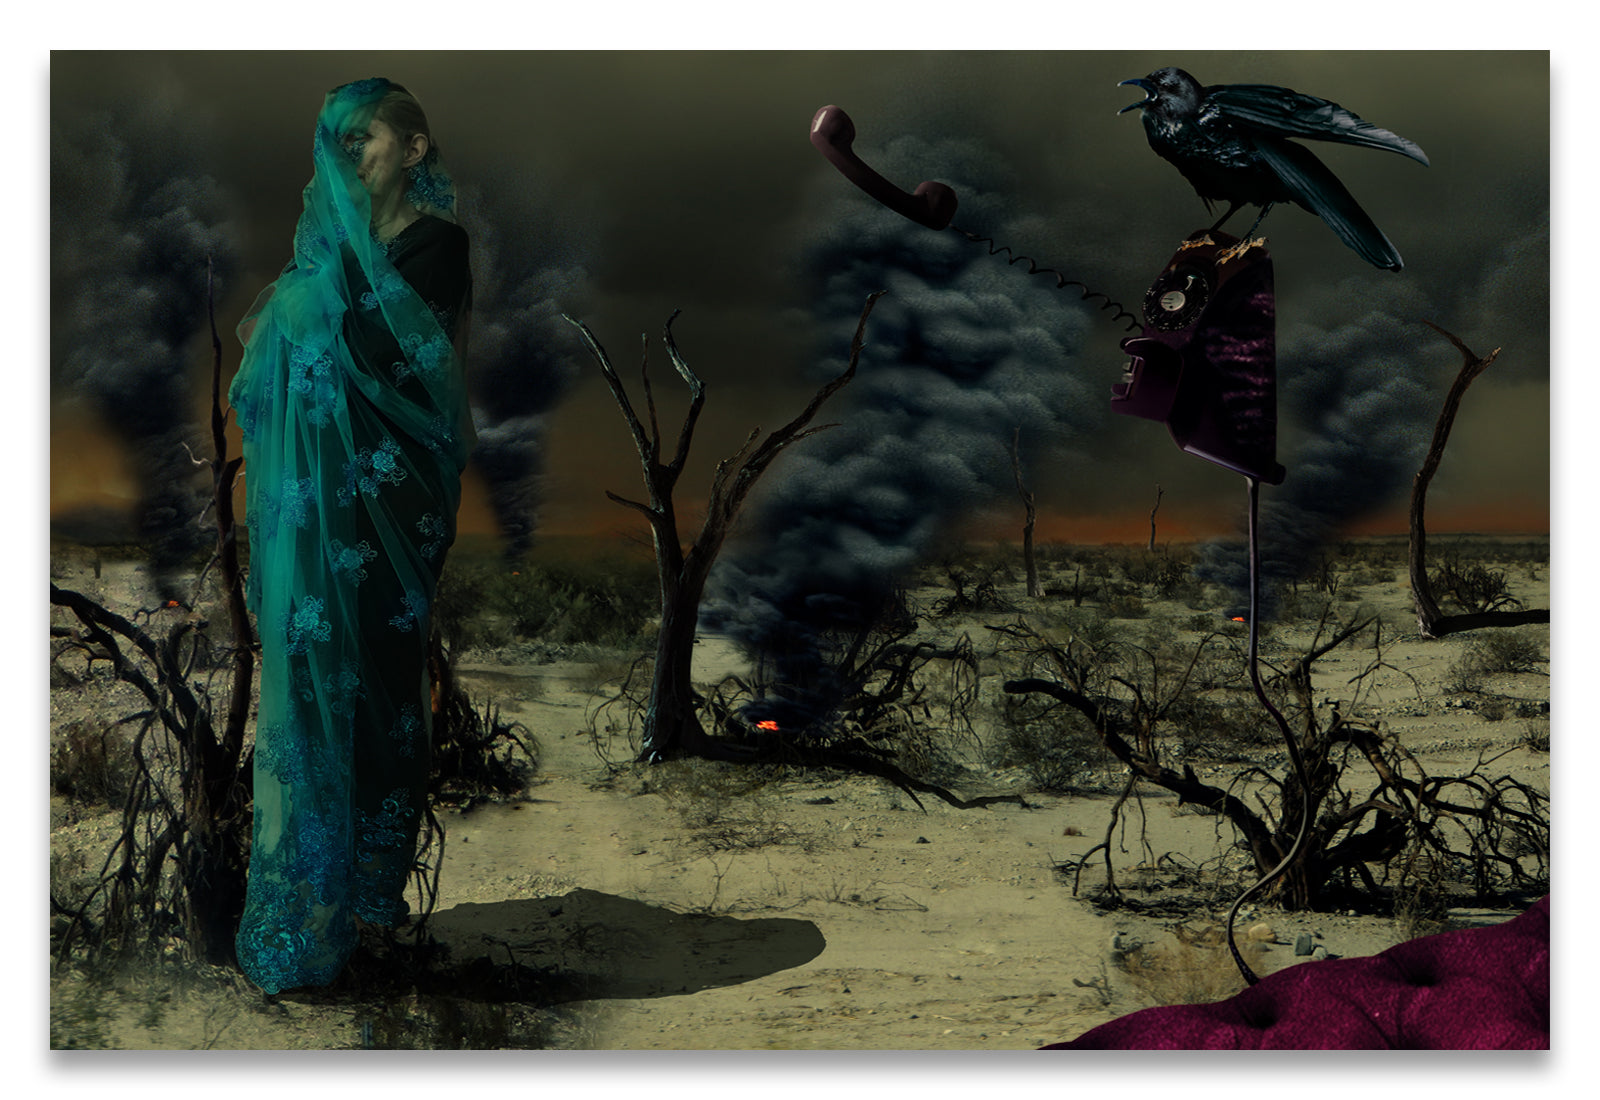 Mother Wrapped in Byzantine Blue Lace Fabric in an Apocalyptic setting with Spot Fires in the Background and a Crow Perched on an Analog, off the hook, Phone-Metal Print-Aluminum Print